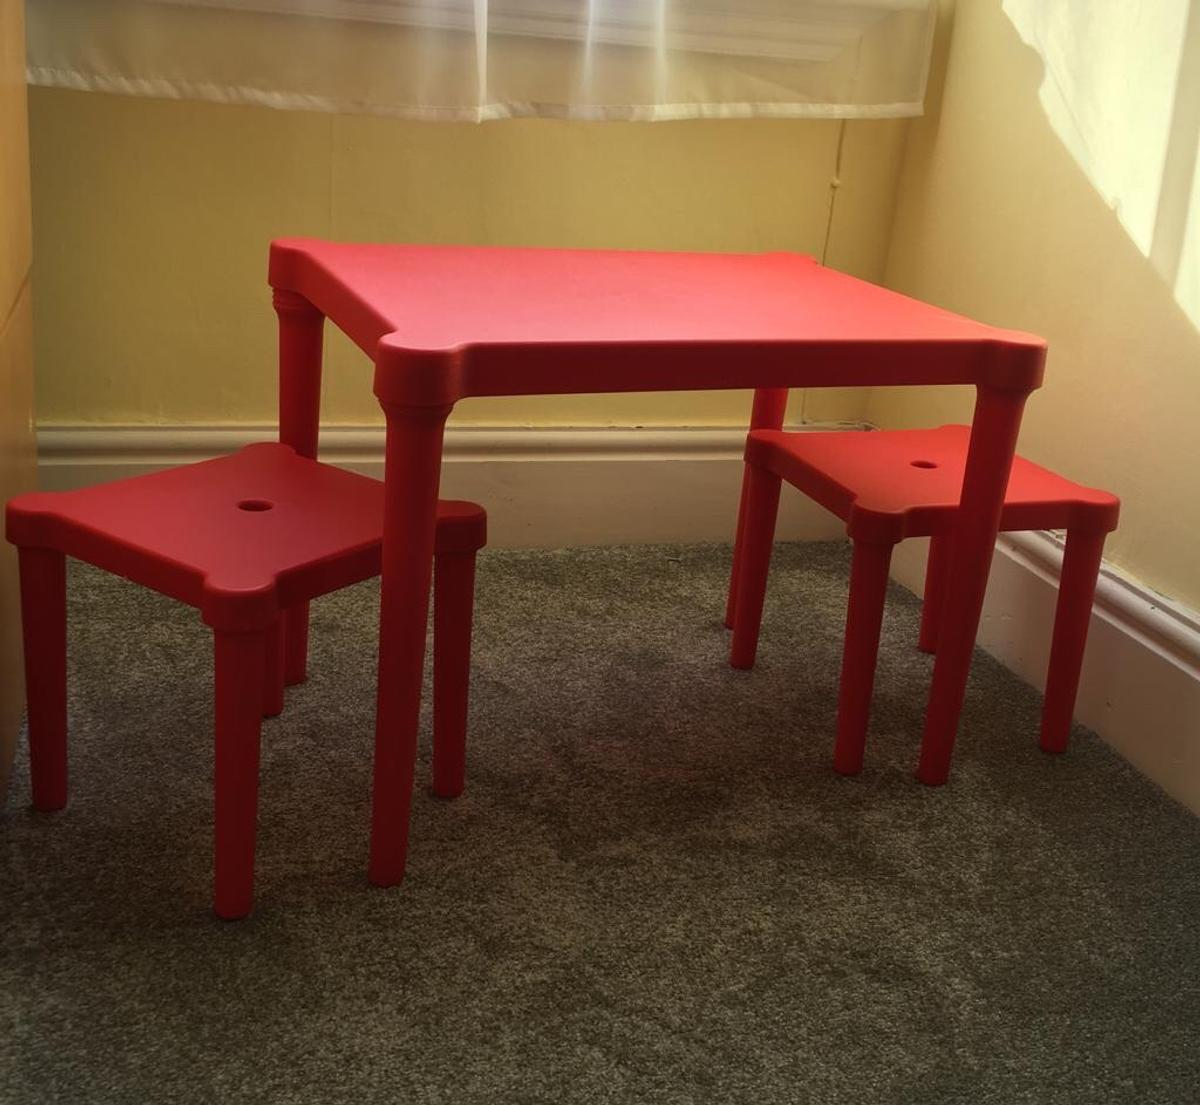 Childrens Folding Table And Chairs Children S Fold Up Table And Chairs